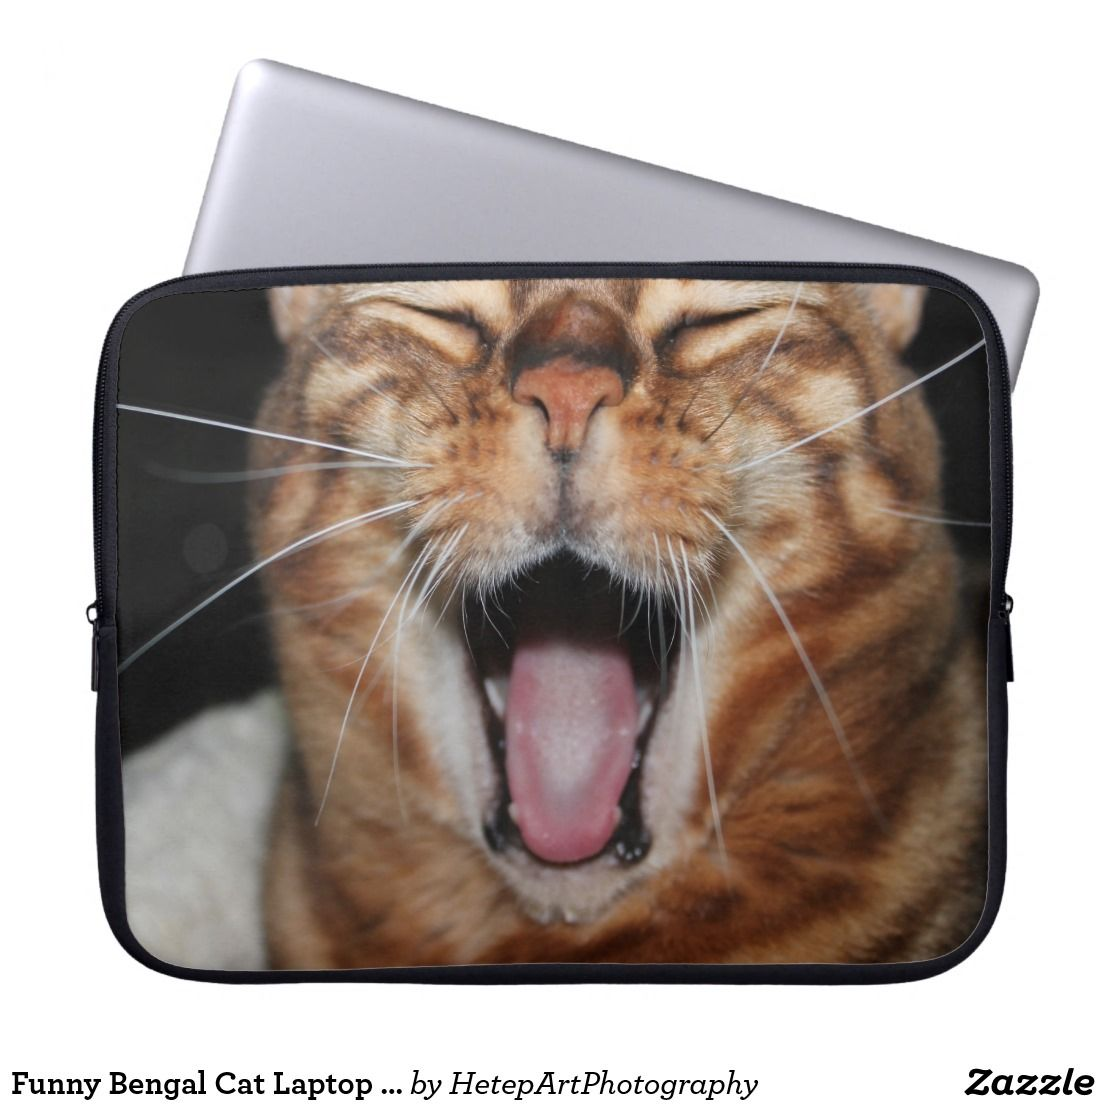 Funny Bengal Cat Laptop Sleeve, Add Your Own Meme Laptop